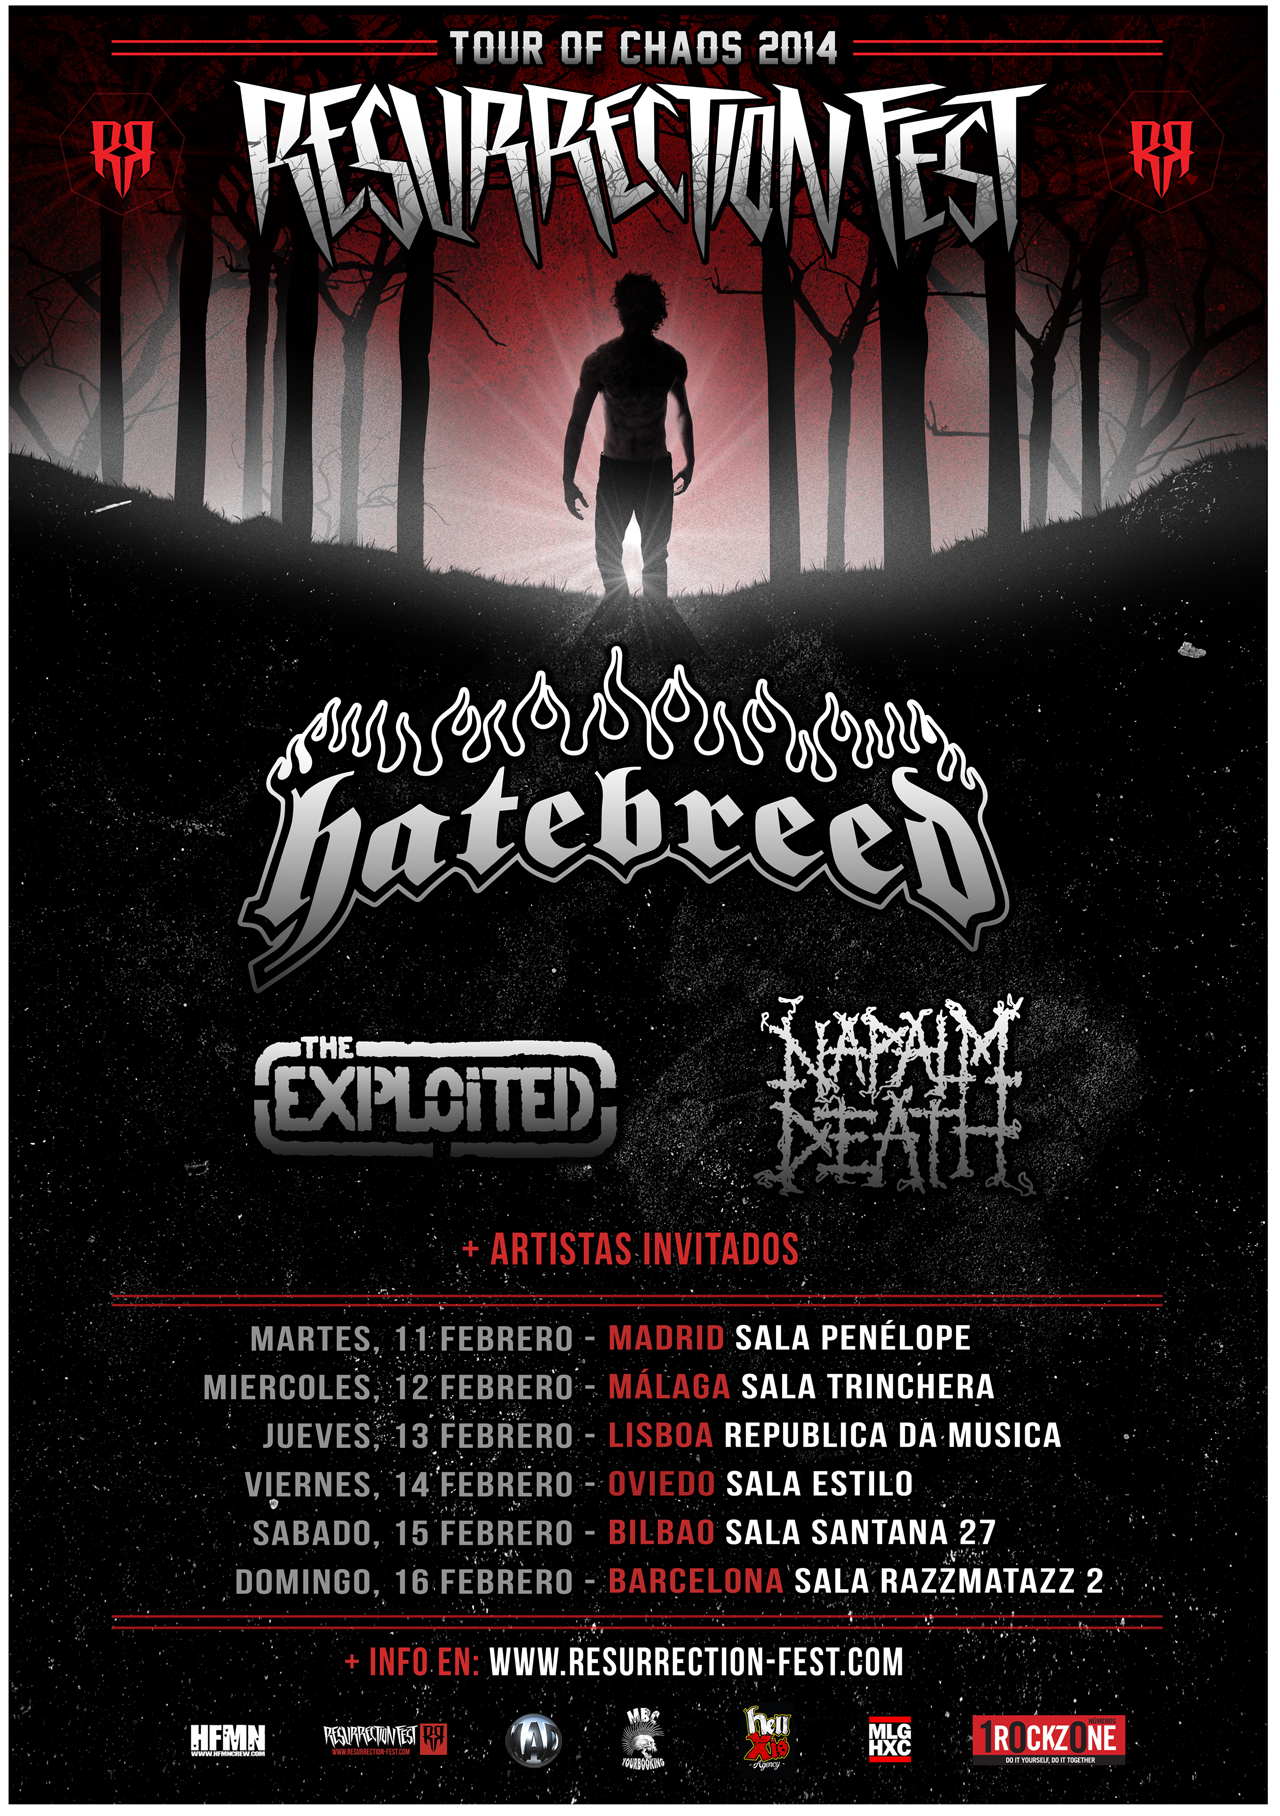 Tour of Chaos 2014 - Resurrection Fest